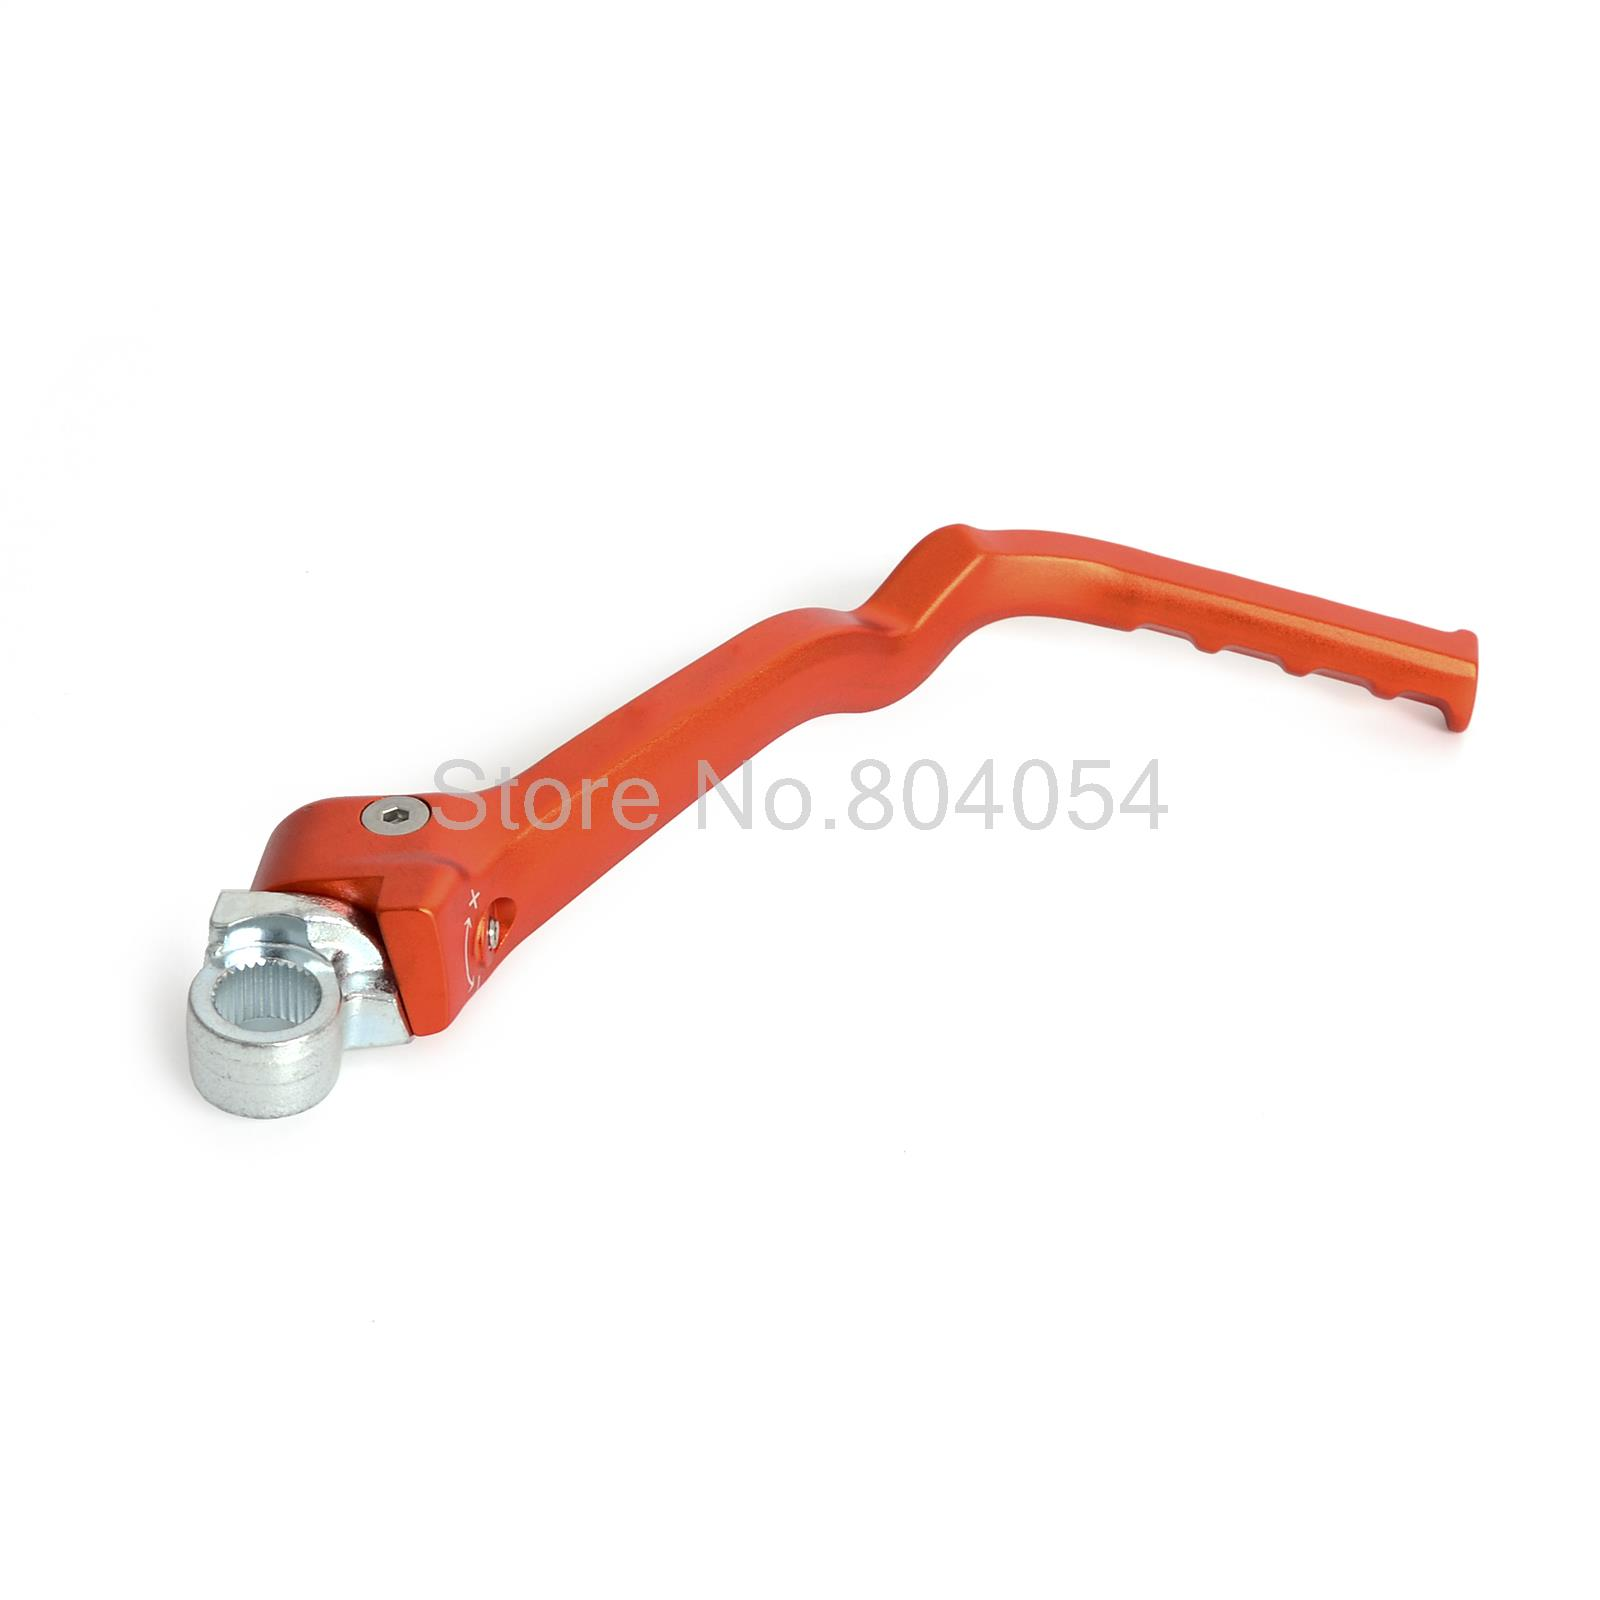 CNC Forged Kick Start Lever for KTM 250 300 350 450 500 SX XC XCF XCW EXCF XCFW SIX DAYS forged kick start starter lever pedal for ktm 250 sx sxf xc exc xcf xcw xcfw 300 xc exc xcw 350 xcf excf xcfw 450 xcw 500 exc